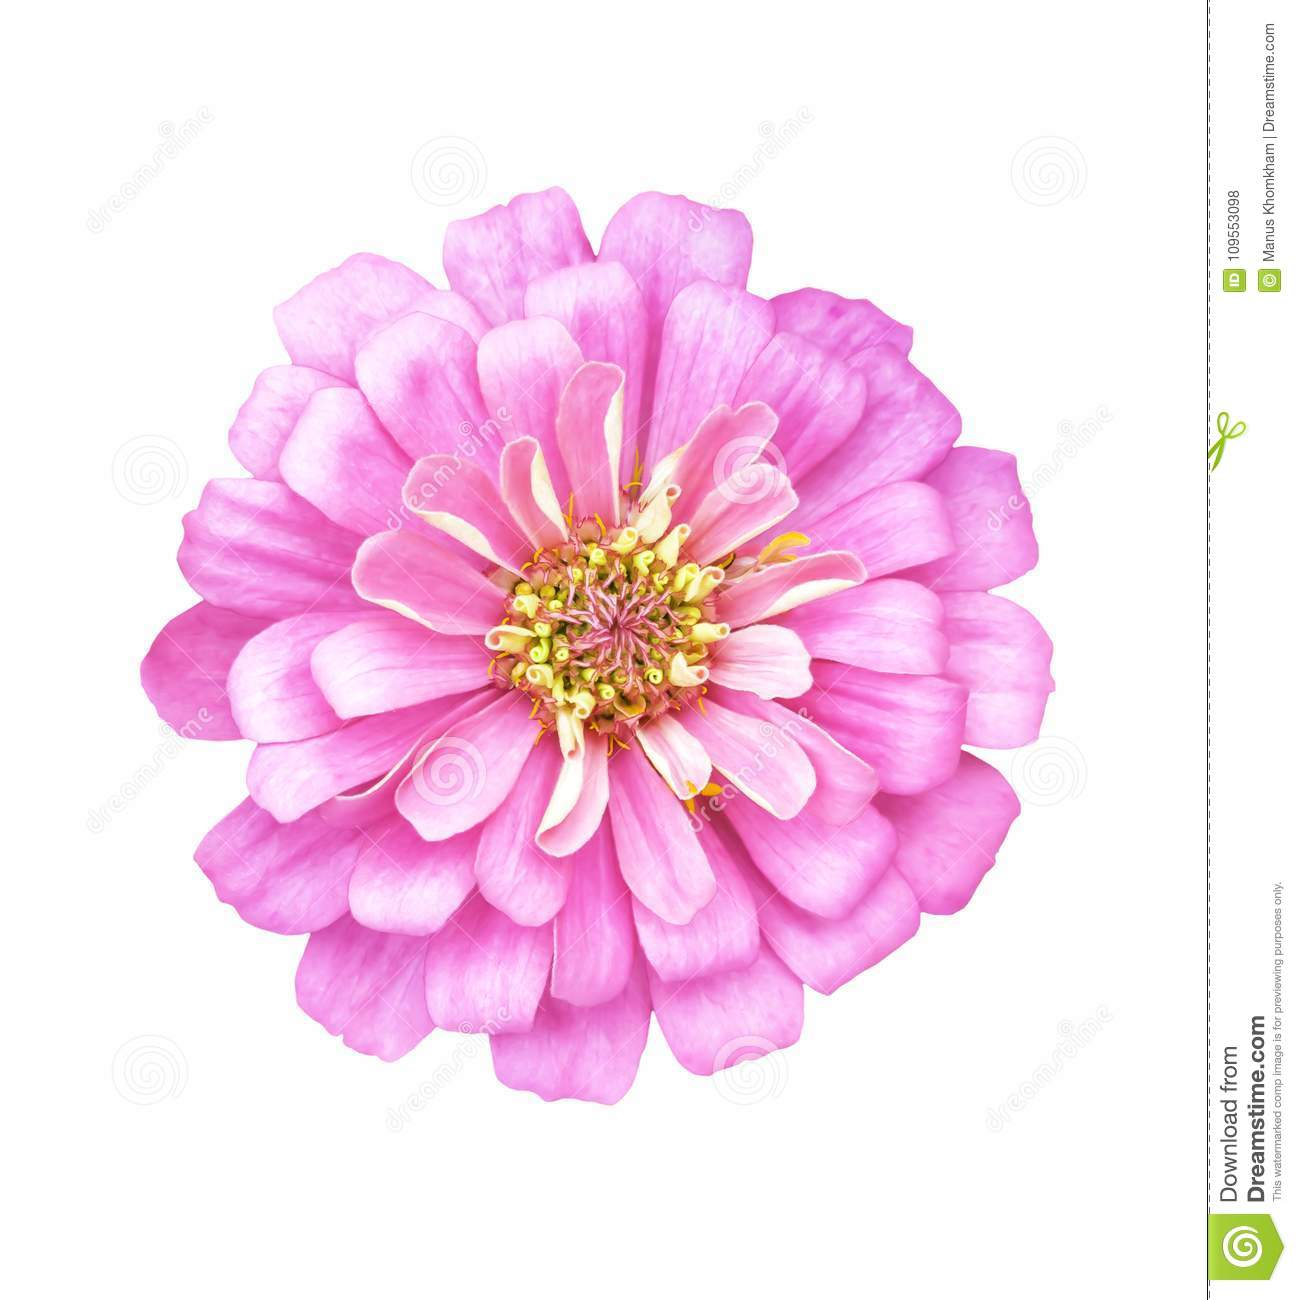 Single pink flower isolated on white background stock photo image download single pink flower isolated on white background stock photo image of florist beautiful mightylinksfo